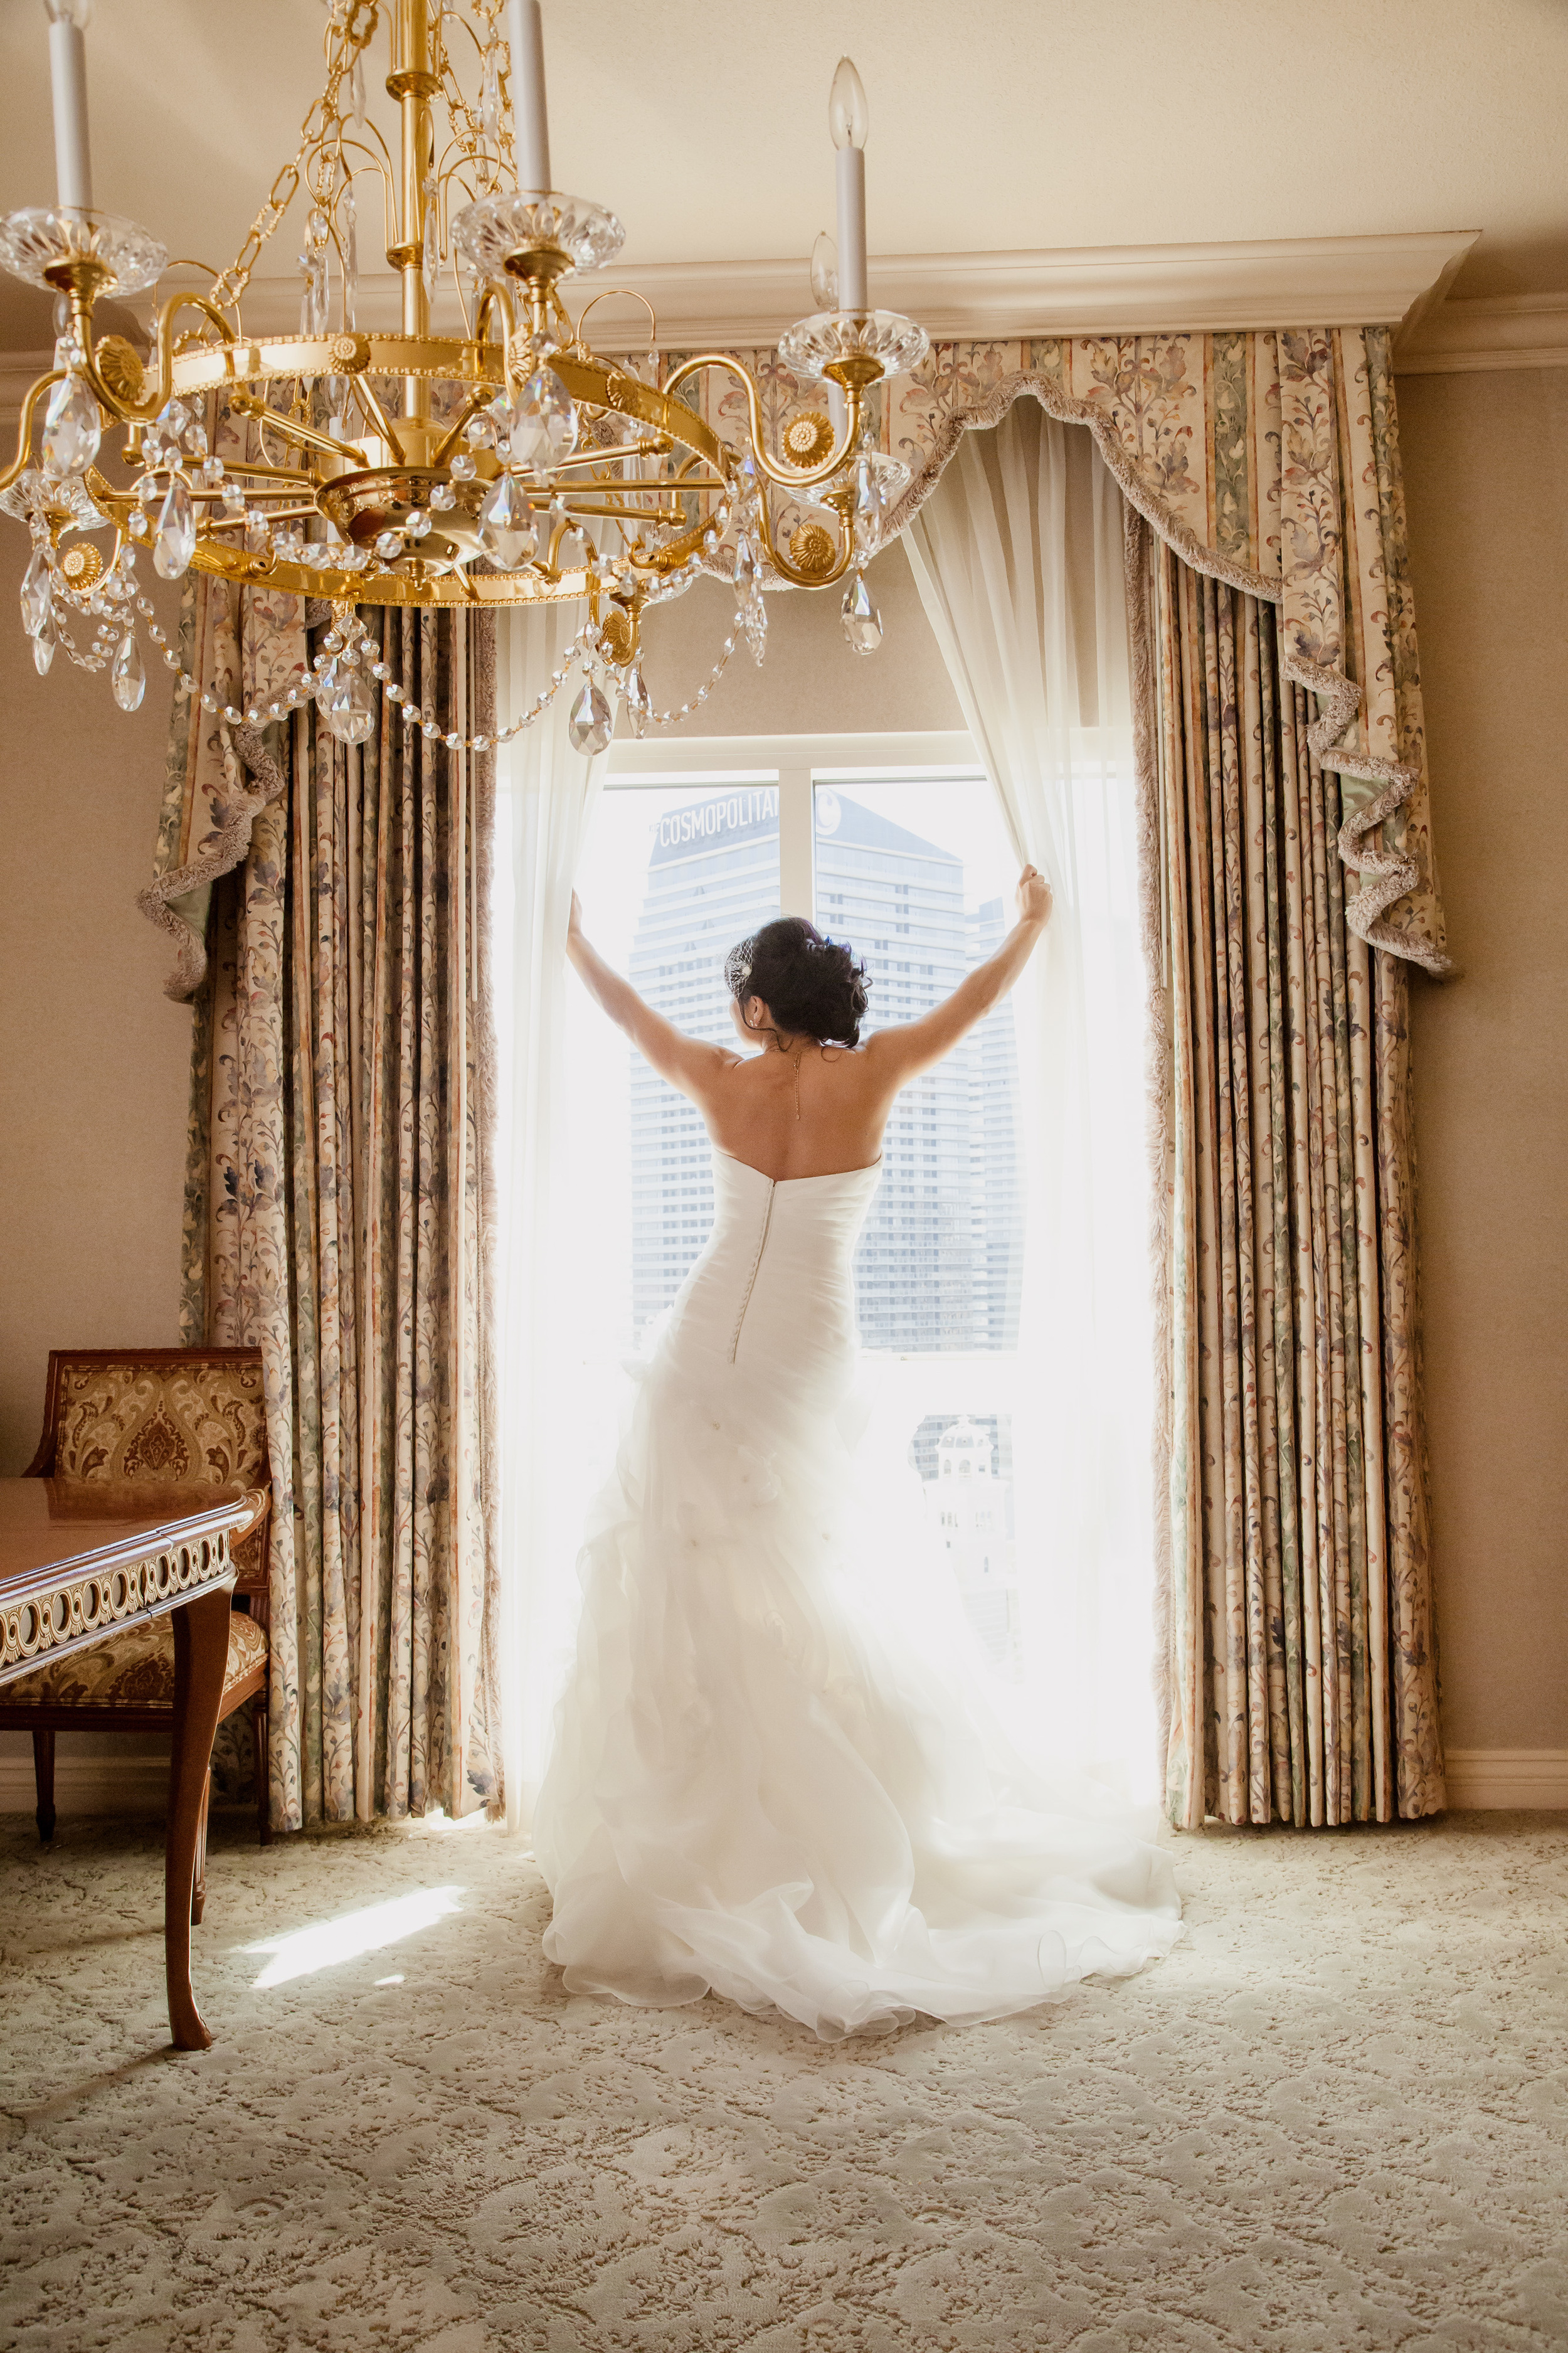 Always a classic image of the bride pulling back the drapes of a window.